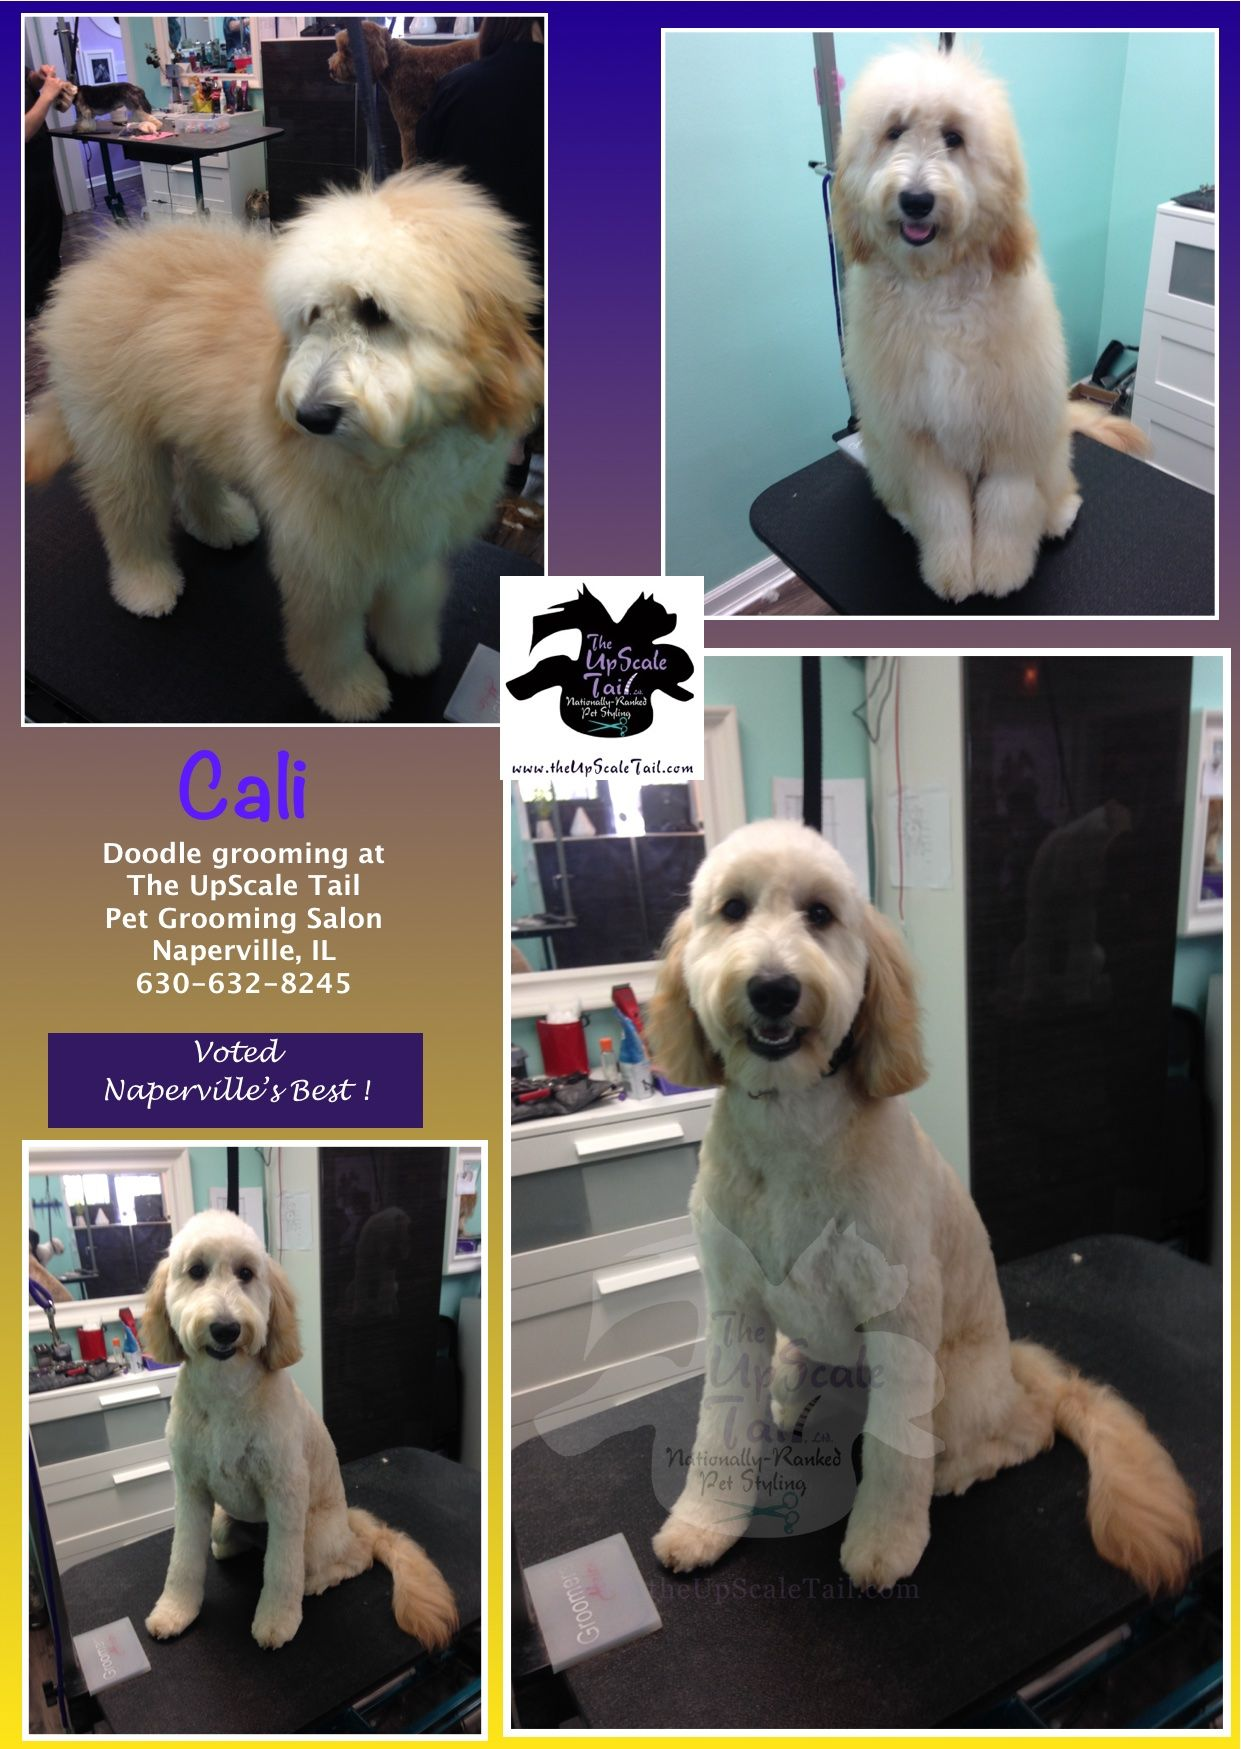 Cali the Doodle, makeover & groomed at The UpScale Tail